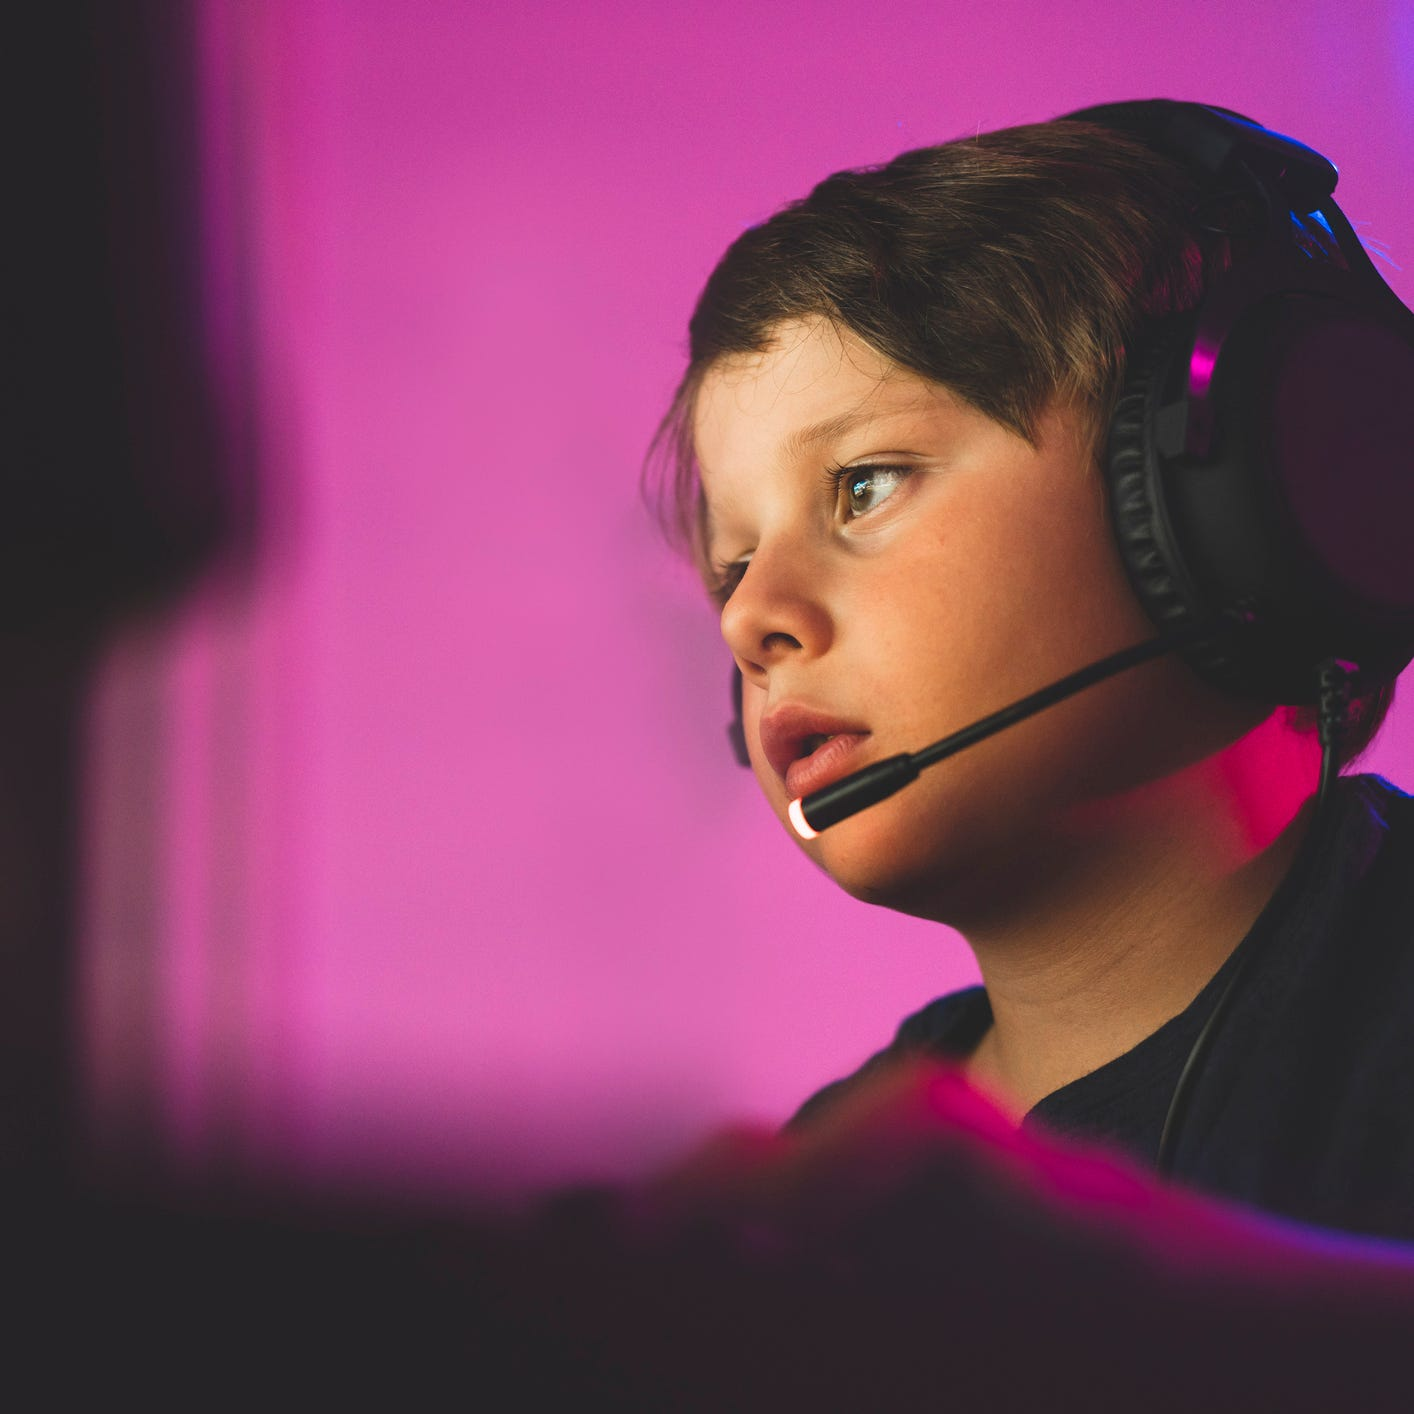 Can video games be a part of a healthy childhood?